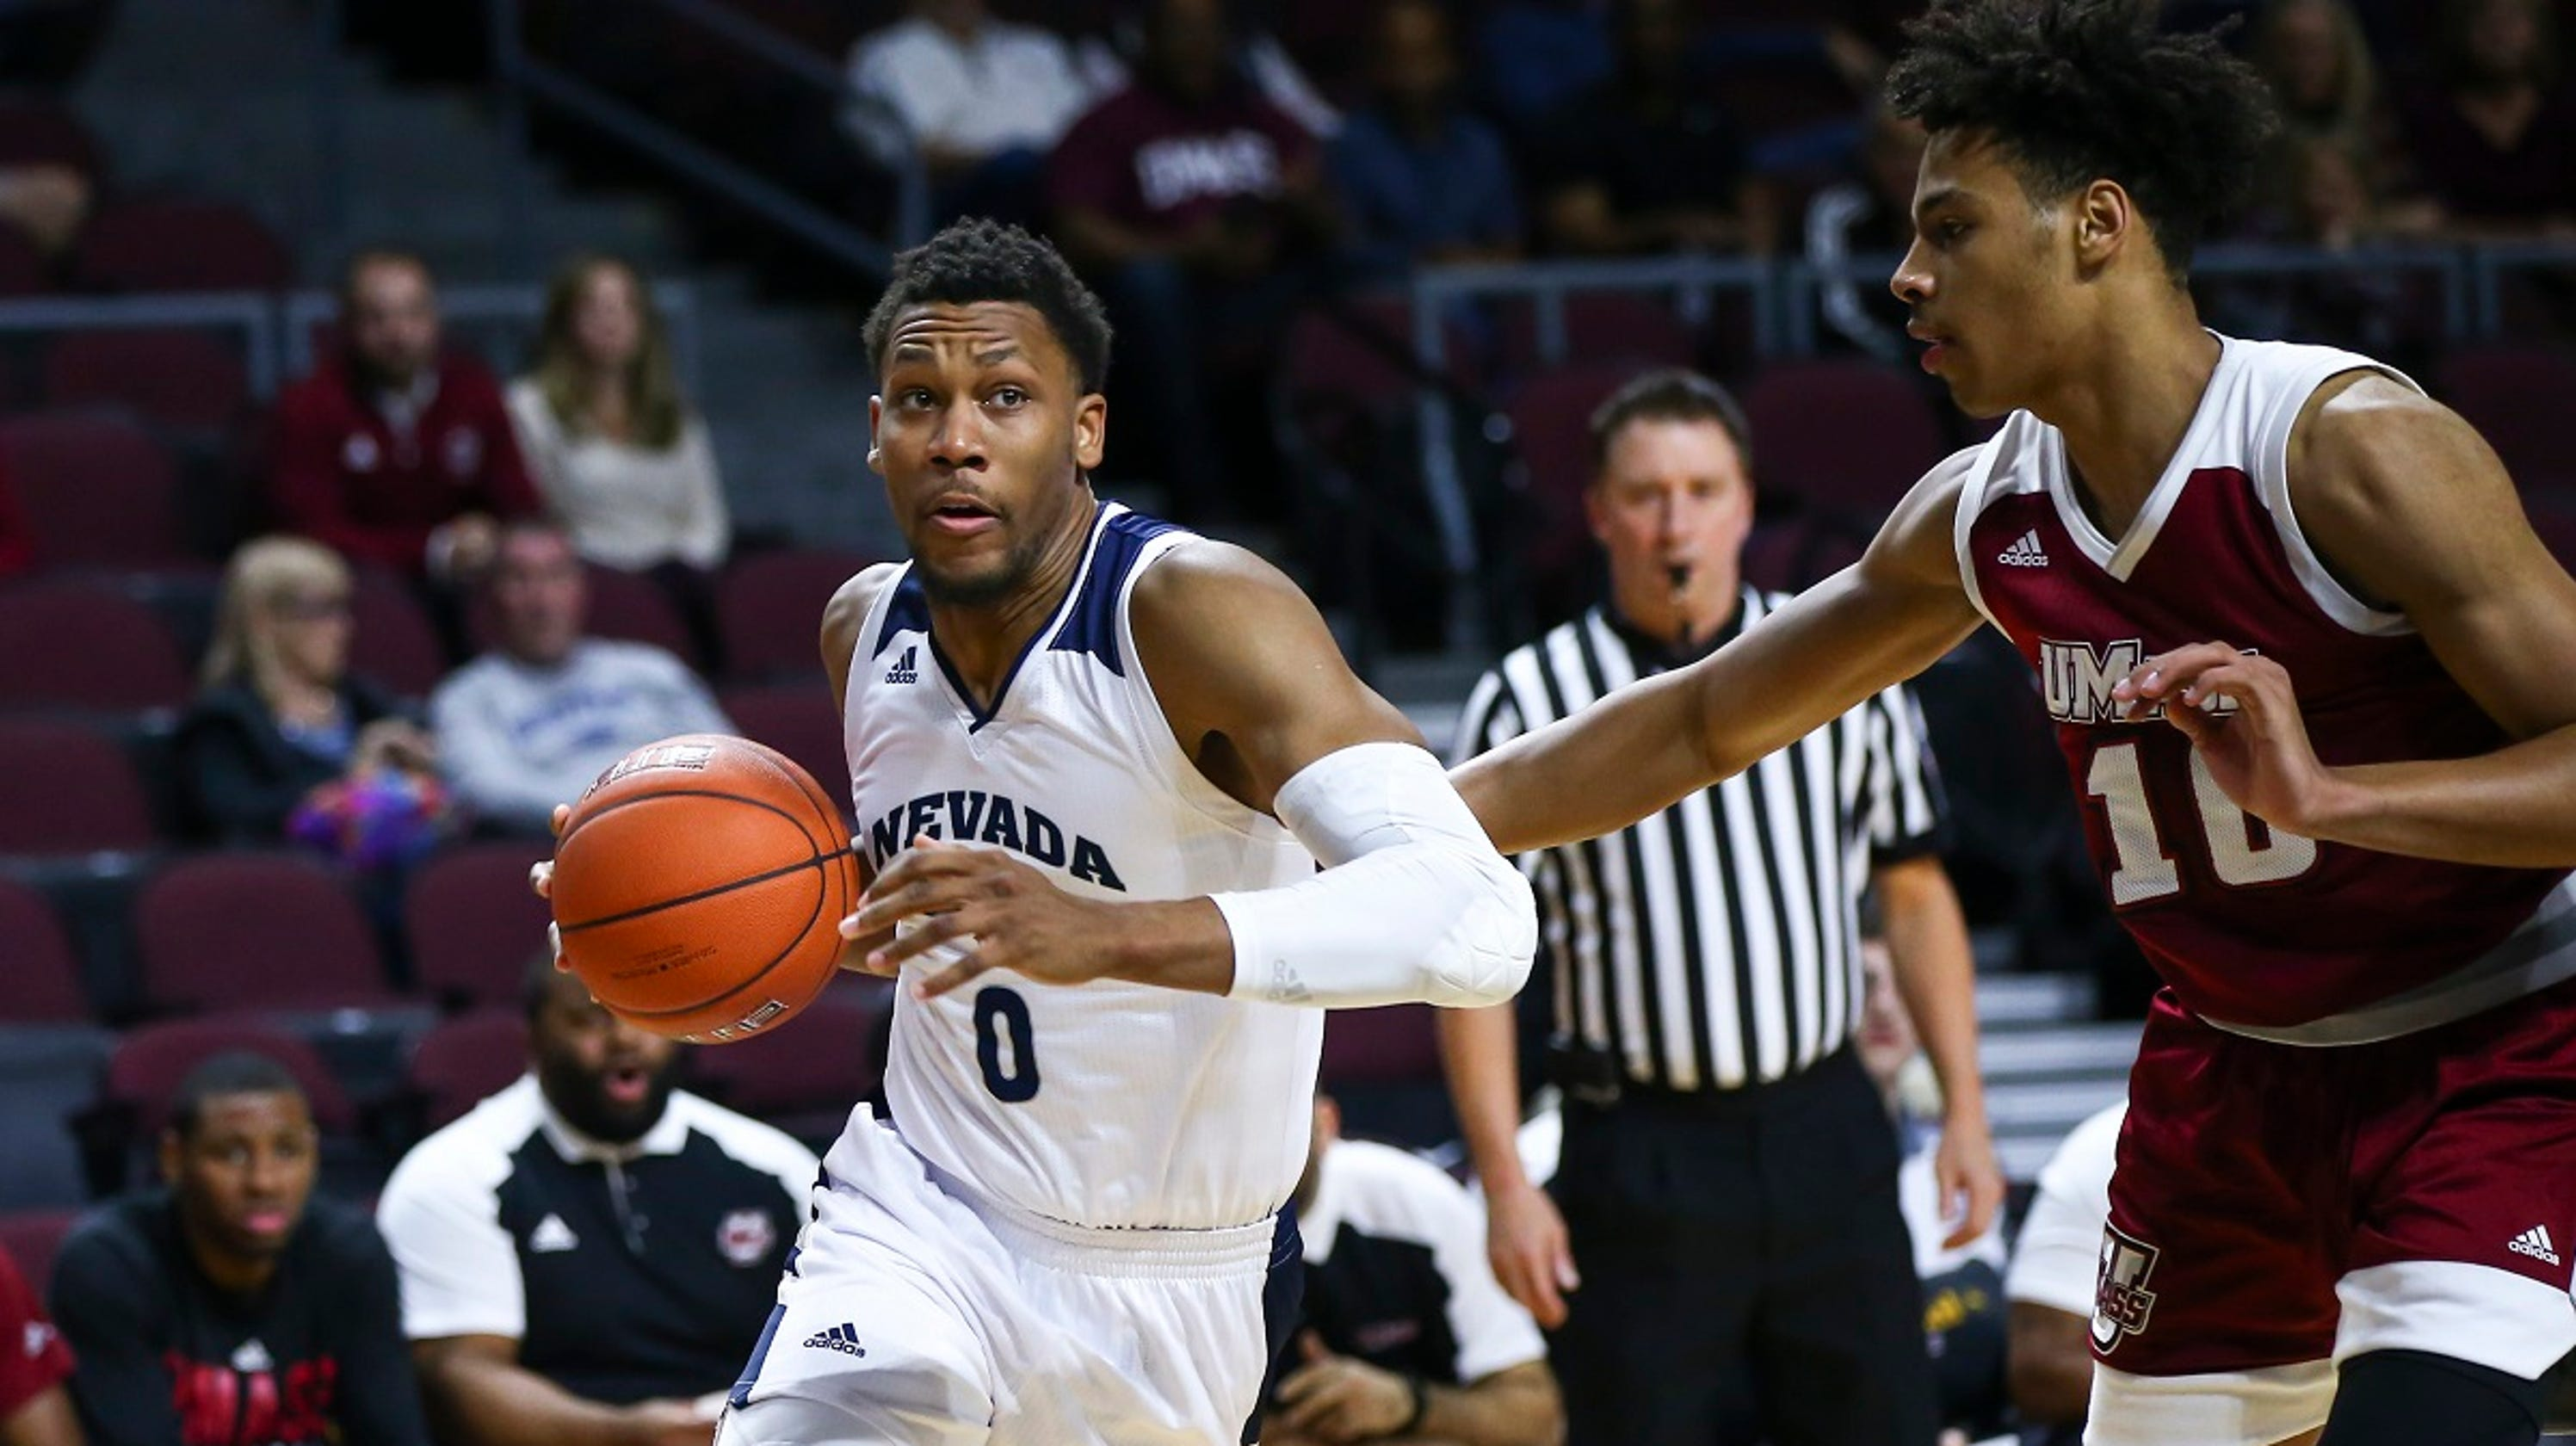 wolf pack drops 110 points on umass to win las vegas tournament title